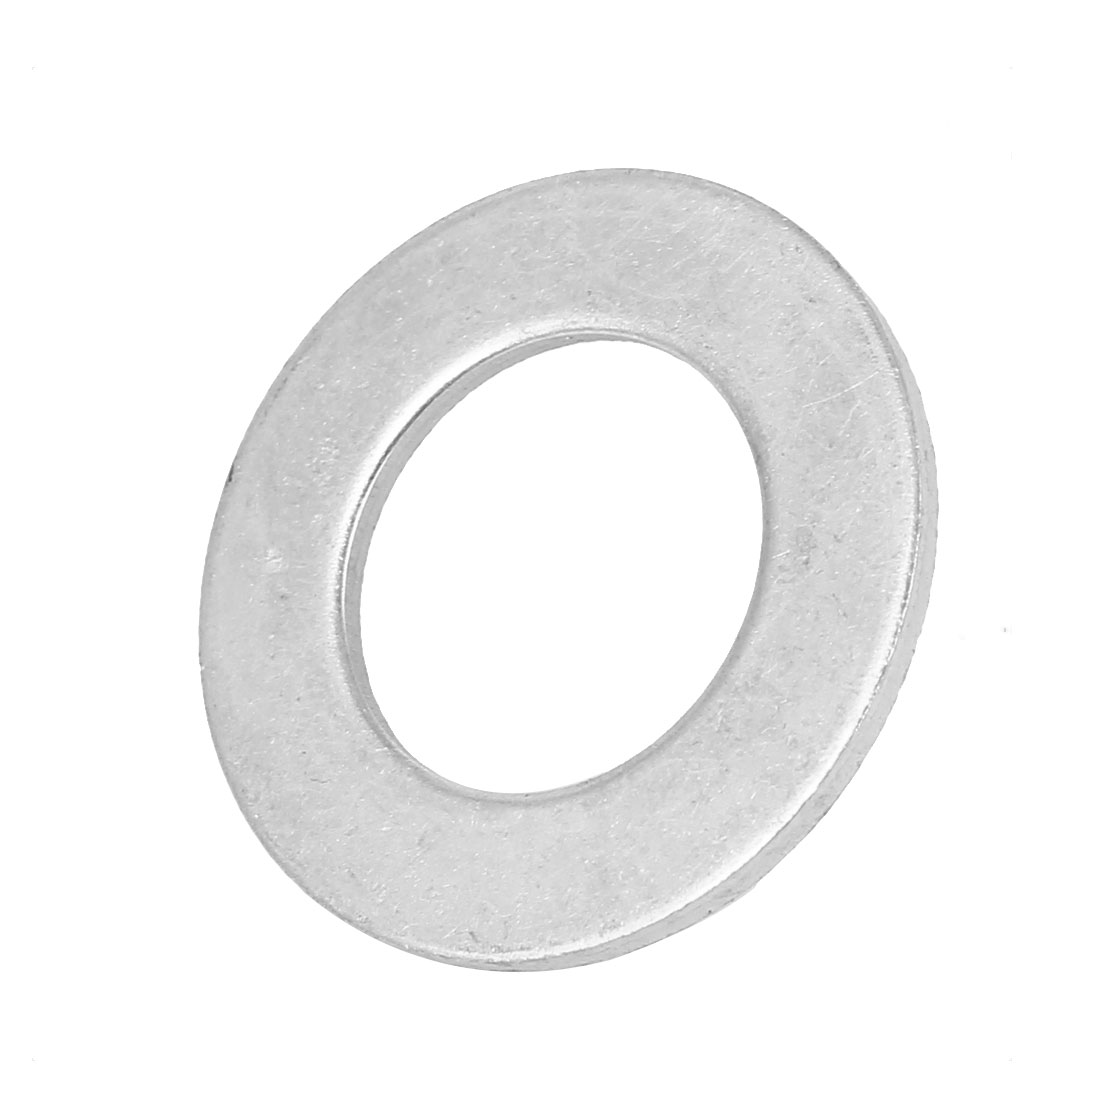 18mm x 34mm x 2mm Zinc Plated Flat Spacer Washer Gasket Fastener GB97